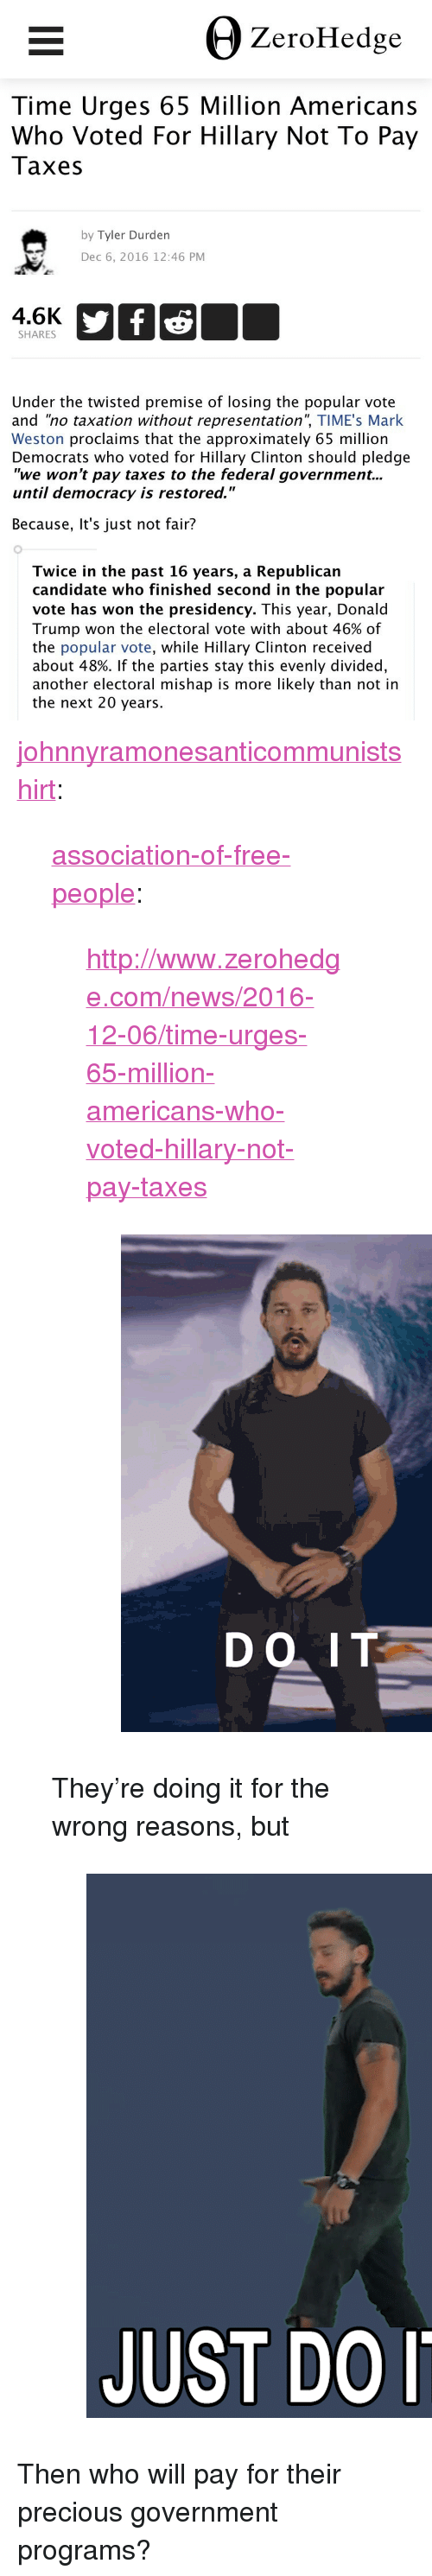 """Tyler Durden: +) Z  erofeddge  Time Urges 65 Million Americans  Who Voted For Hillary Not To Pay  Taxes  by Tyler Durden  Dec 6, 2016 12:46 PM  4.6K  SHARES  Under the twisted premise of losing the popular vote  and """"no taxation without representation"""", TIME's Mark  Weston proclaims that the approximately 65 million  Democrats who voted for Hillary Clinton should pledge  """"we won't pay taxes to the federal government...  until democracy is restored.""""  Because, It's just not fair?  Twice in the past 16 years, a Republican  candidate who finished second in the popular  vote has won the presidency. This year, Donald  Trump won the electoral vote with about 46% of  the popular vote, while Hillary Clinton received  about 48%. If the parties stay this evenly divided,  another electoral mishap is more likely than not in  the next 20 years. <p><a href=""""http://johnnyramonesanticommunistshirt.tumblr.com/post/154134727610/association-of-free-people"""" class=""""tumblr_blog"""">johnnyramonesanticommunistshirt</a>:</p>  <blockquote><p><a href=""""http://association-of-free-people.tumblr.com/post/154134539634/httpwwwzerohedgecomnews2016-12-06time-urges"""" class=""""tumblr_blog"""">association-of-free-people</a>:</p><blockquote> <p><a href=""""http://www.zerohedge.com/news/2016-12-06/time-urges-65-million-americans-who-voted-hillary-not-pay-taxes"""">http://www.zerohedge.com/news/2016-12-06/time-urges-65-million-americans-who-voted-hillary-not-pay-taxes</a></p> <figure class=""""tmblr-full"""" data-orig-width=""""429"""" data-orig-height=""""576"""" data-tumblr-attribution=""""wslofficial:QuEpRjPNSJsmONASLn8ThA:ZHxjps1mI2NnB"""" data-orig-src=""""https://78.media.tumblr.com/f4b9e714ffe81325df1b9f8dca61b88b/tumblr_npc9o0GzNI1s7jx17o1_500.gif""""><img src=""""https://78.media.tumblr.com/f4b9e714ffe81325df1b9f8dca61b88b/tumblr_inline_ohsa42eGLa1svtbld_500.gif"""" data-orig-width=""""429"""" data-orig-height=""""576"""" data-orig-src=""""https://78.media.tumblr.com/f4b9e714ffe81325df1b9f8dca61b88b/tumblr_npc9o0GzNI1s7jx17o1_500.gif""""/></figure></blockquote>  <p"""